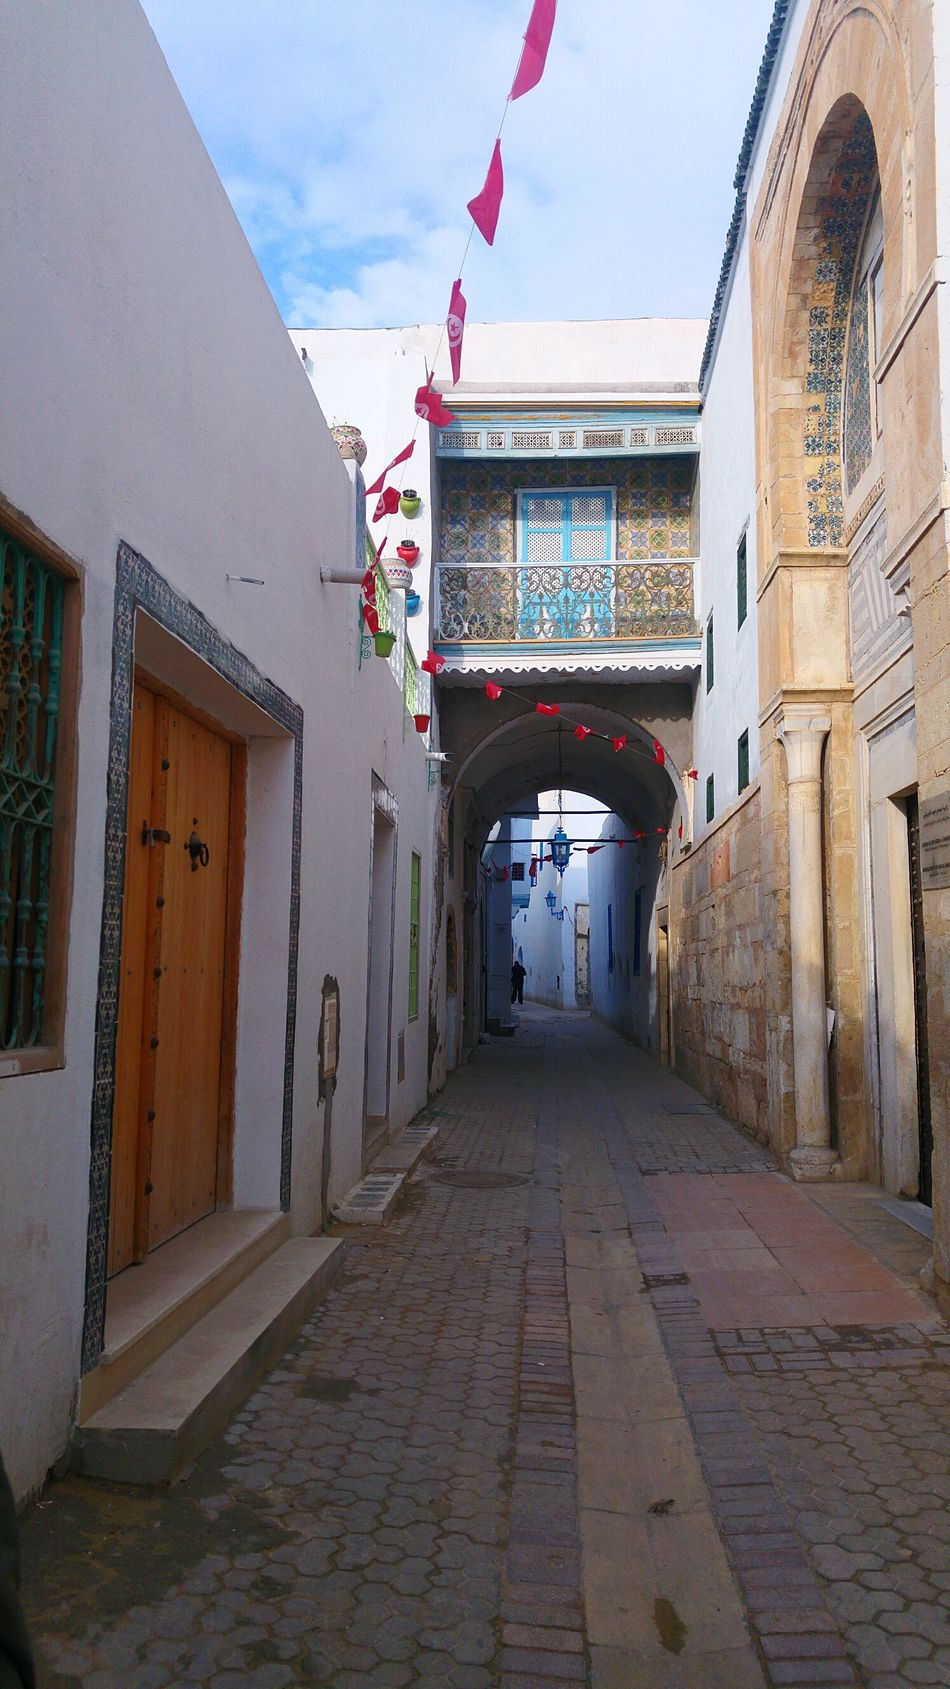 Tn Tunisia Built Structure Architecture History Day Entrance Building Exterior